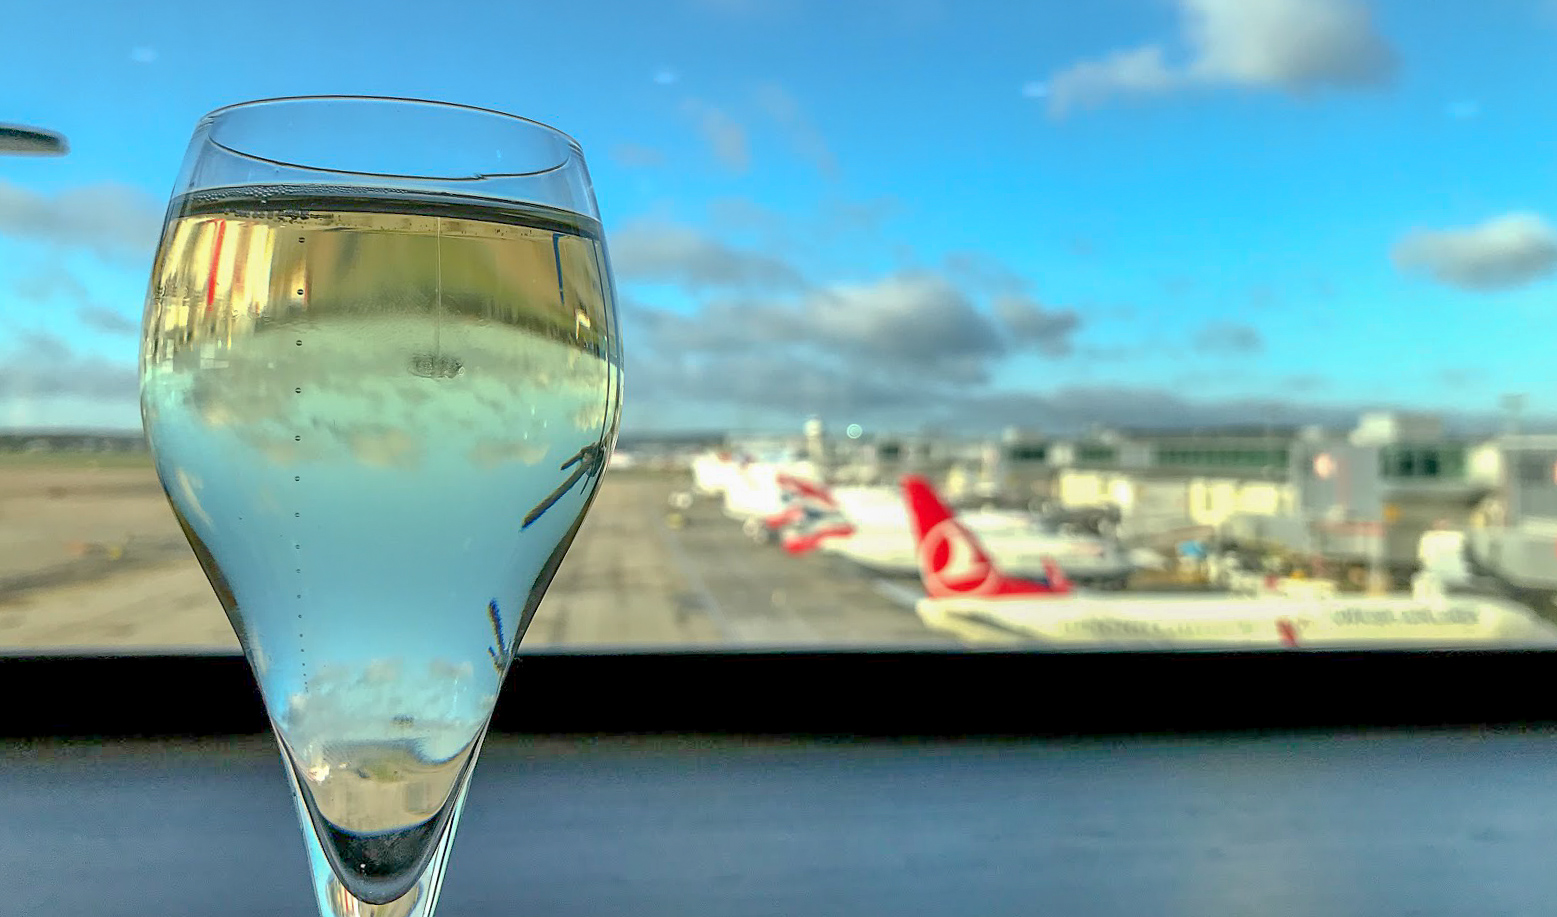 champagne by the window, overlooking planes at No1 Lounge at London Gatwick South Terminal